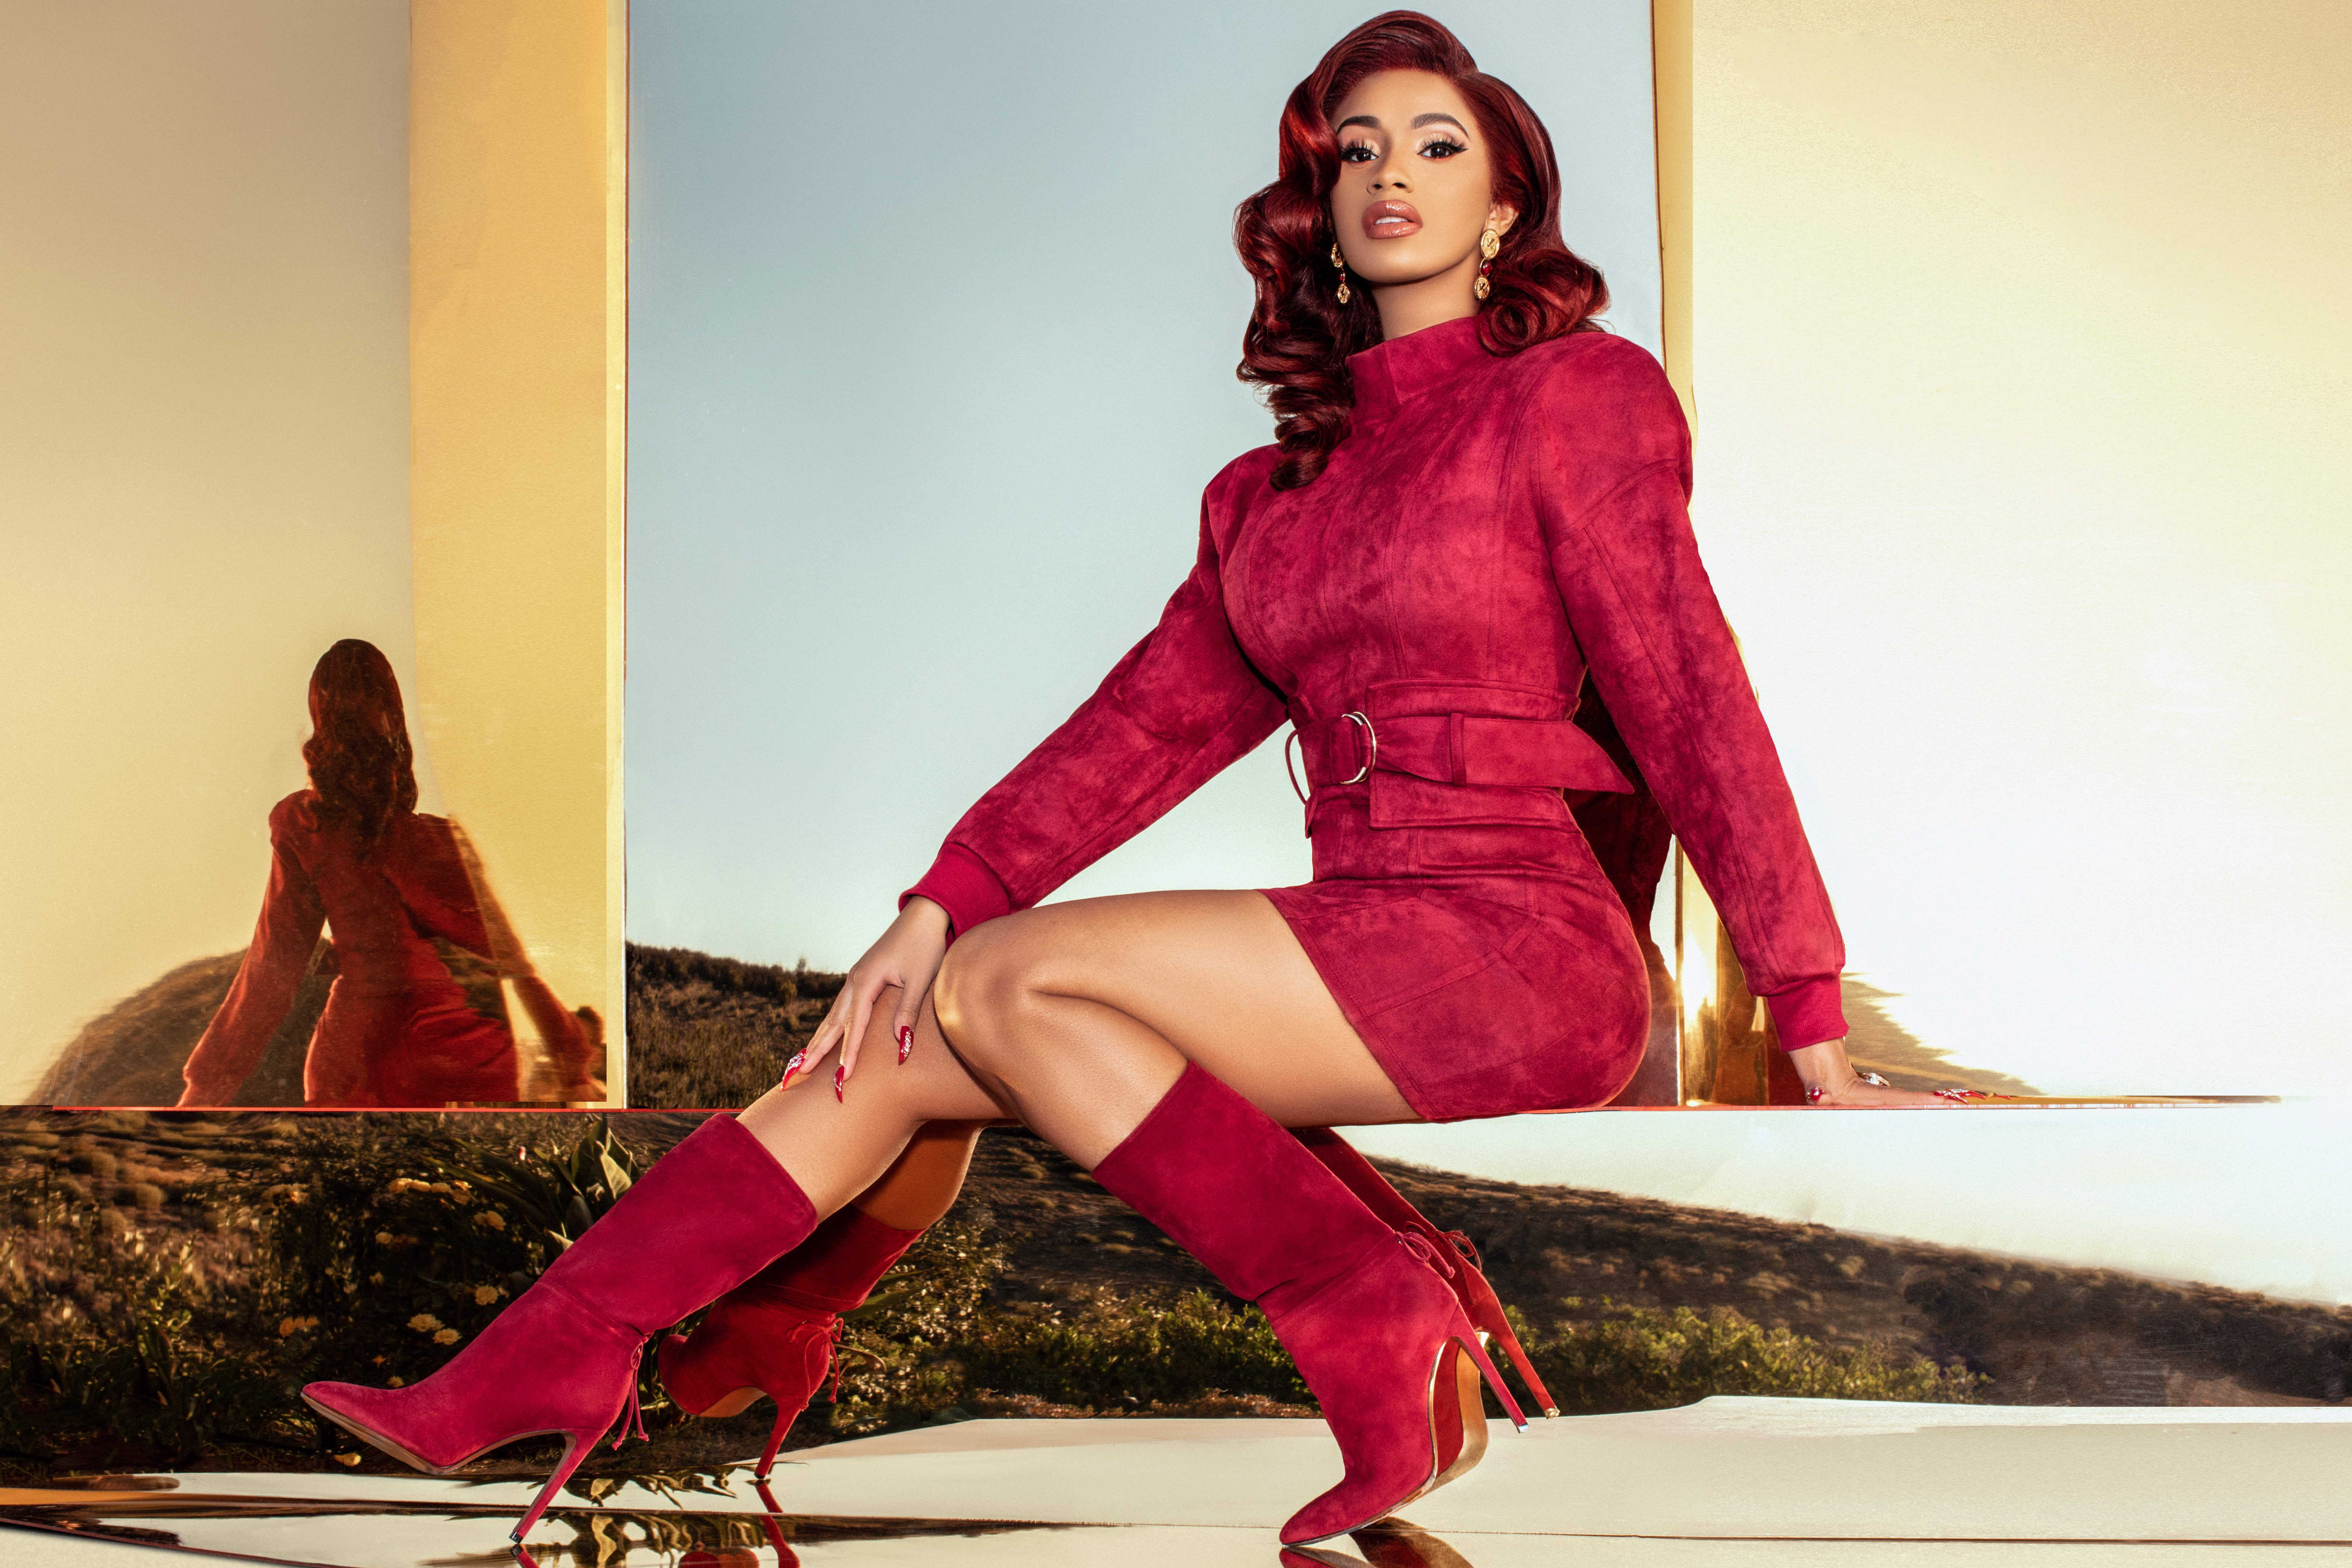 6931b43bab Cardi B's Fashion Nova Collection Sold Out in Minutes, But Will Be ...